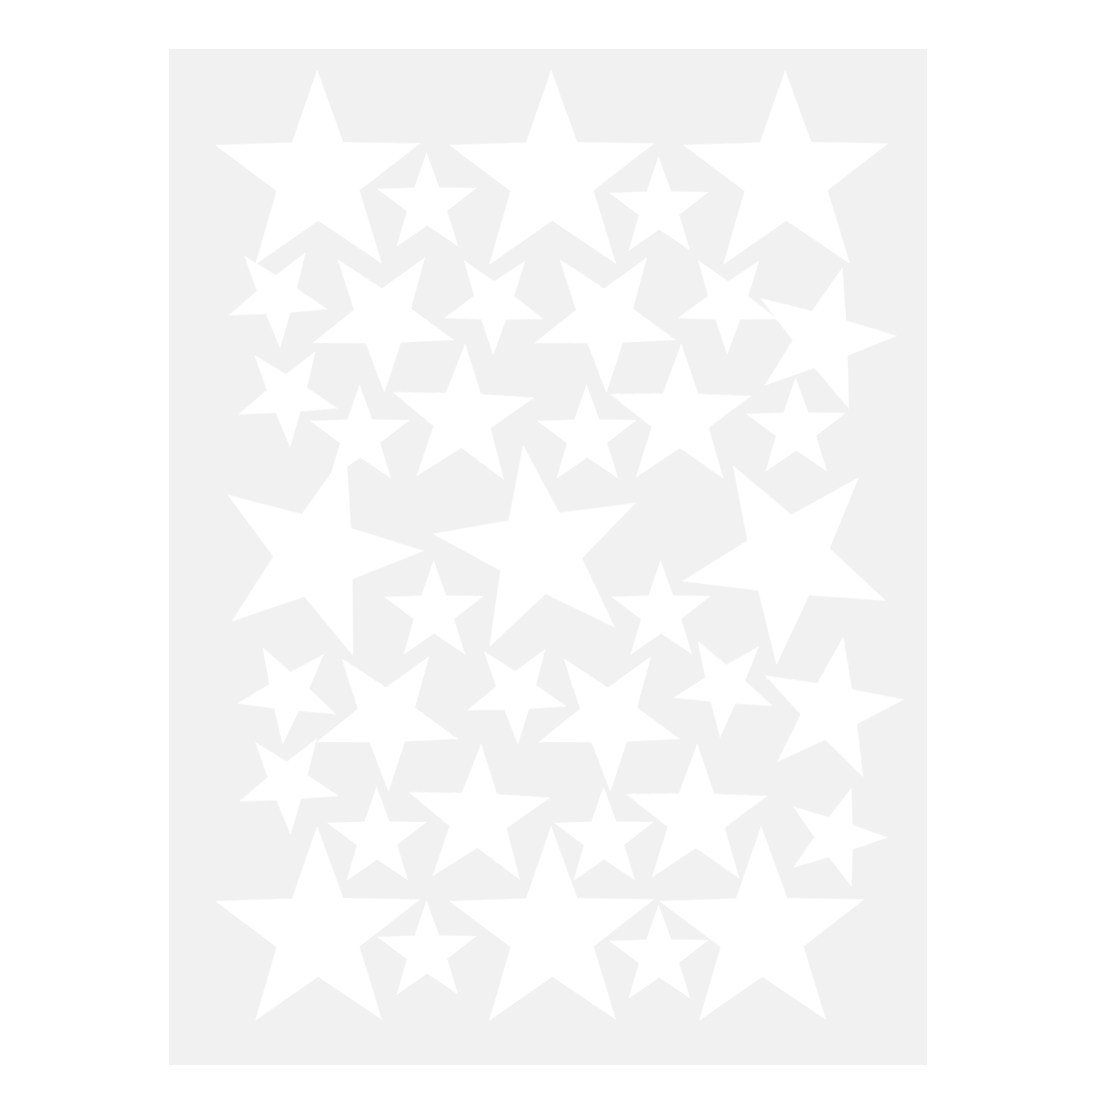 39pcs Star Pattern Wall Sticker Art Decal for Living Room Bedroom White